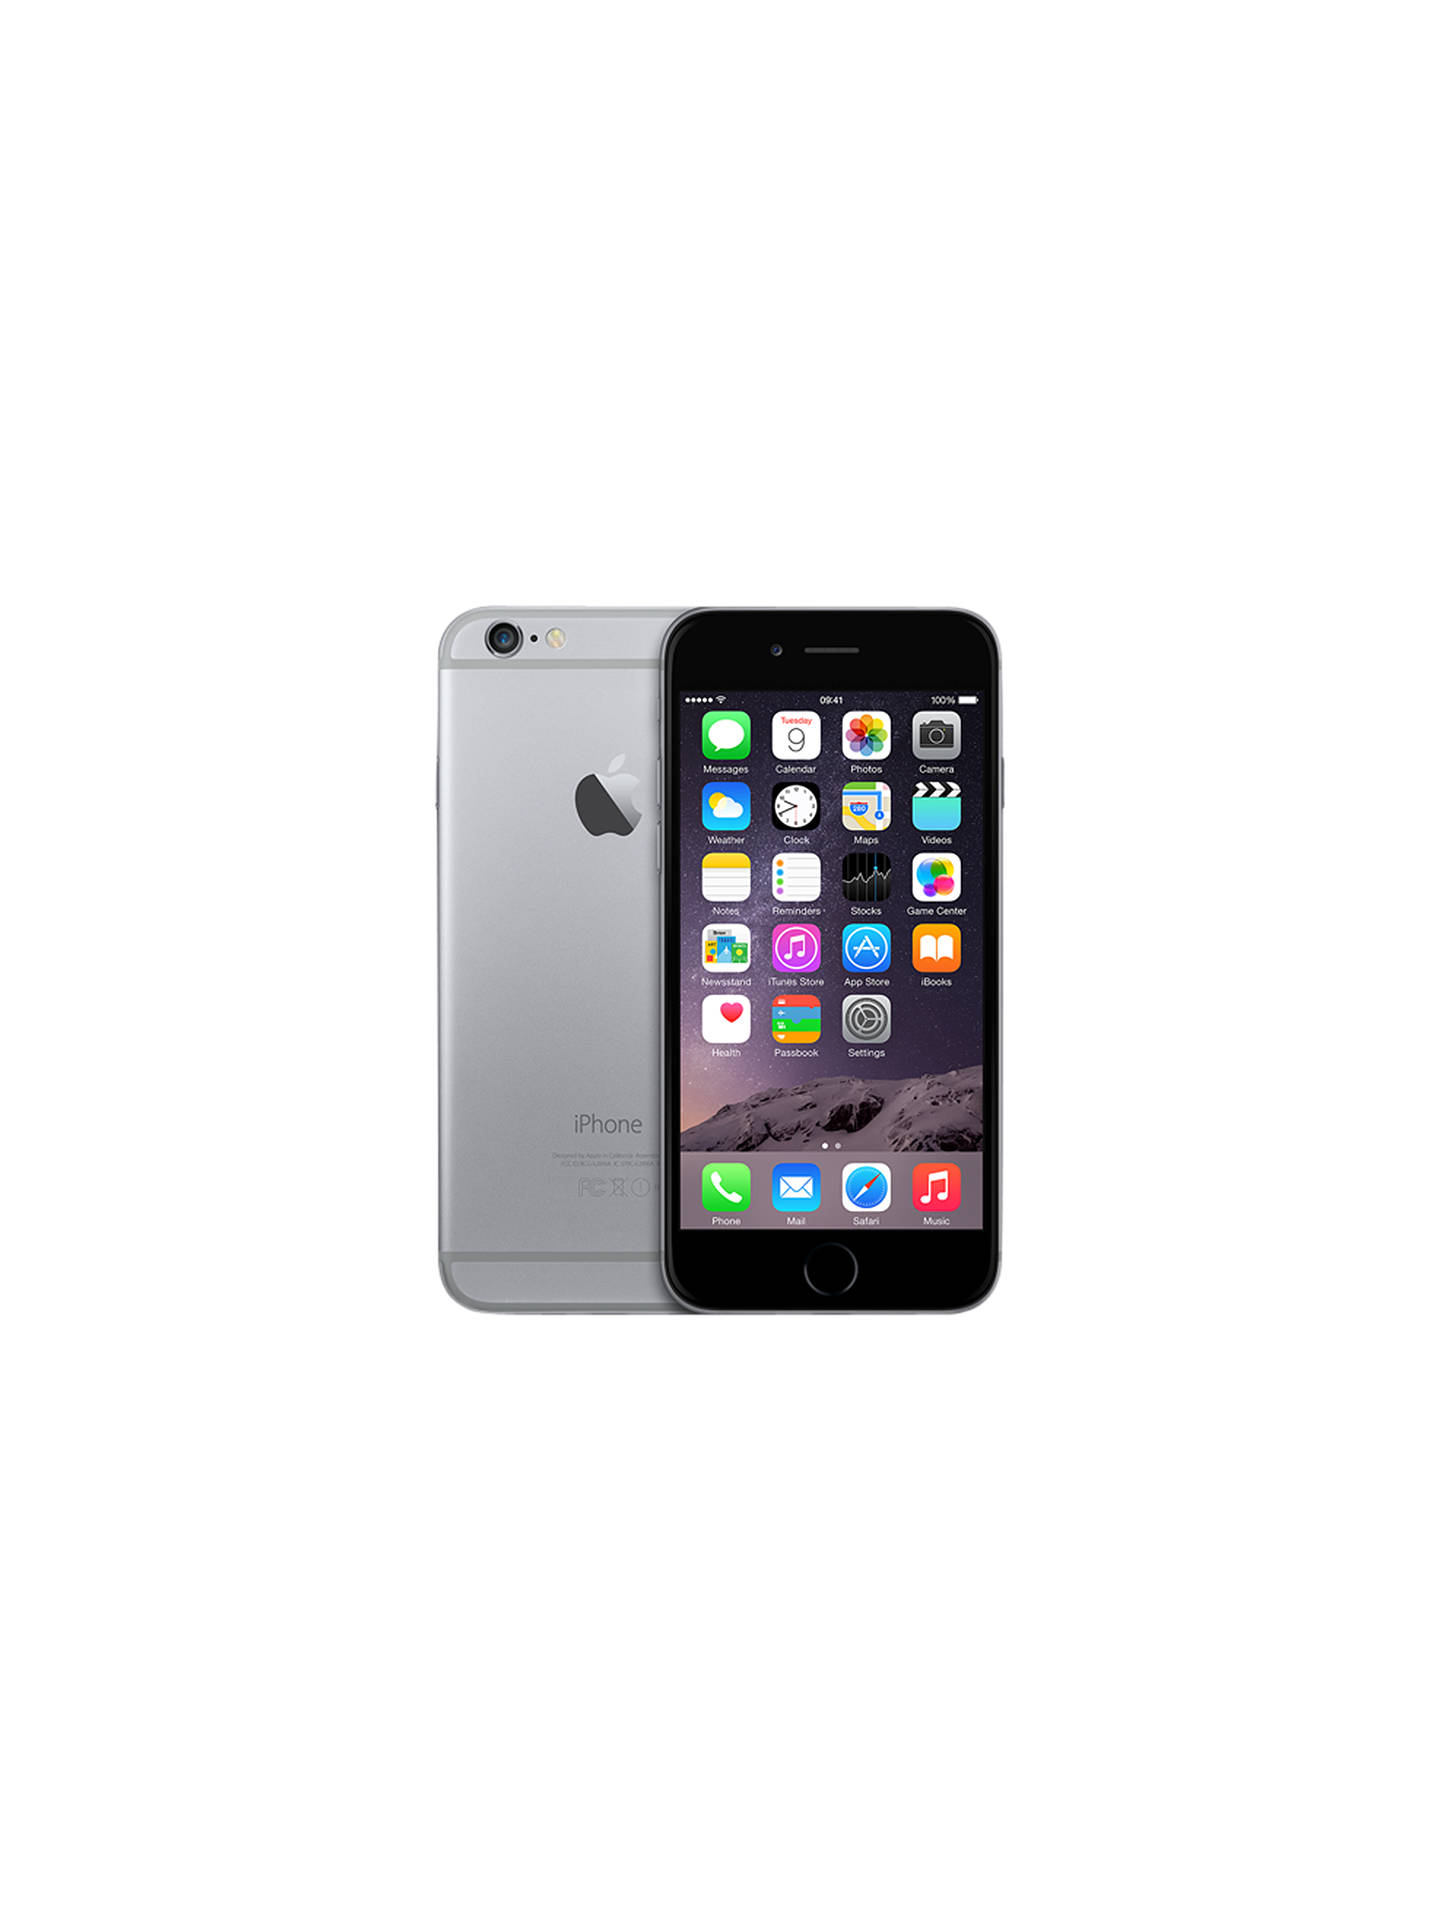 Apple Iphone 6 Ios 47 4g Lte Sim Free 32gb Space Grey At 5 Certified Pre Owned Buyapple